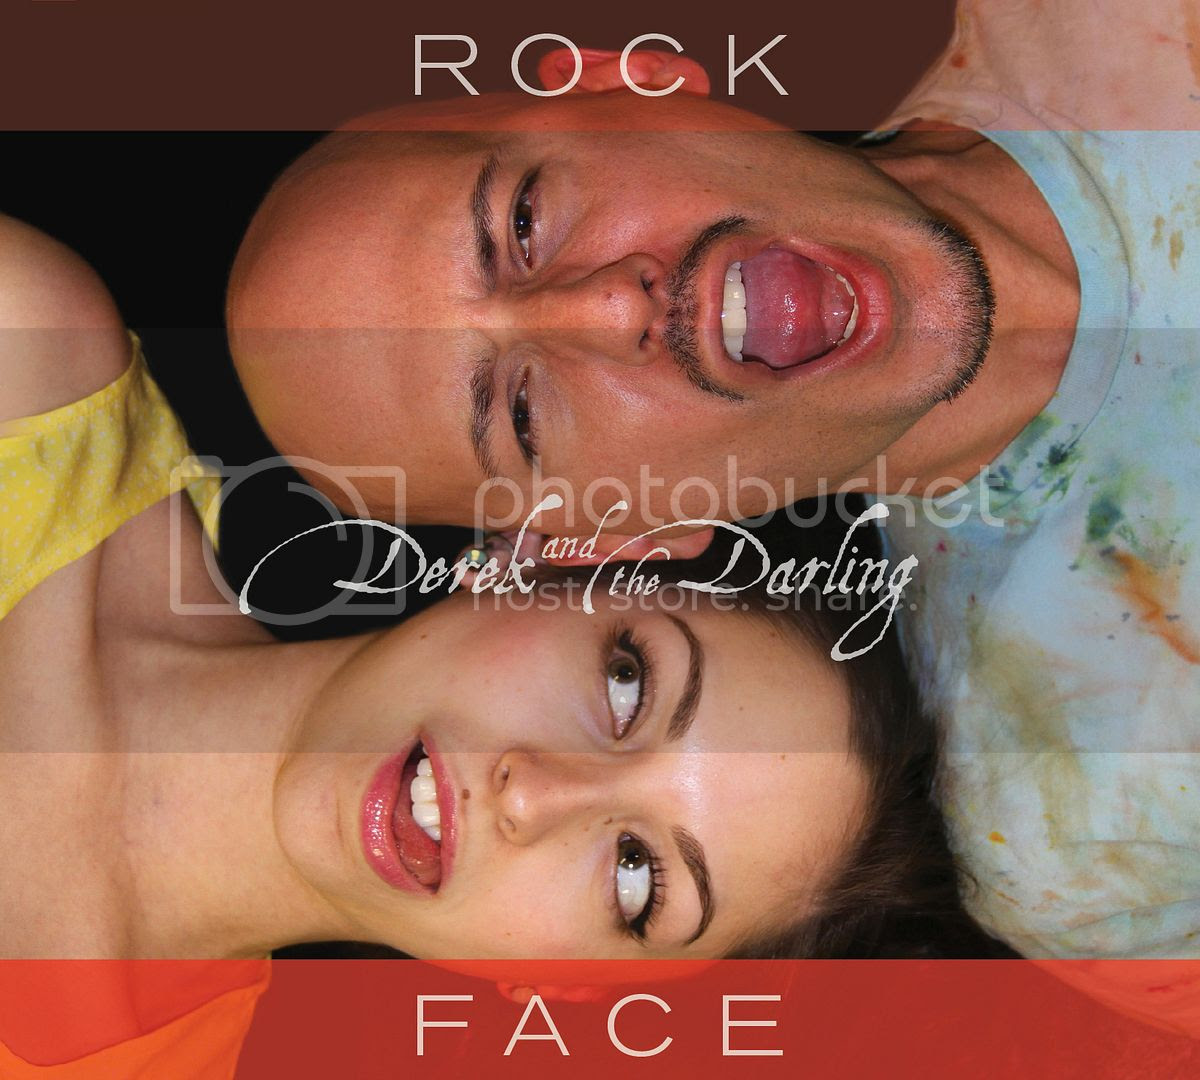 derek and the darling,rock face,cover